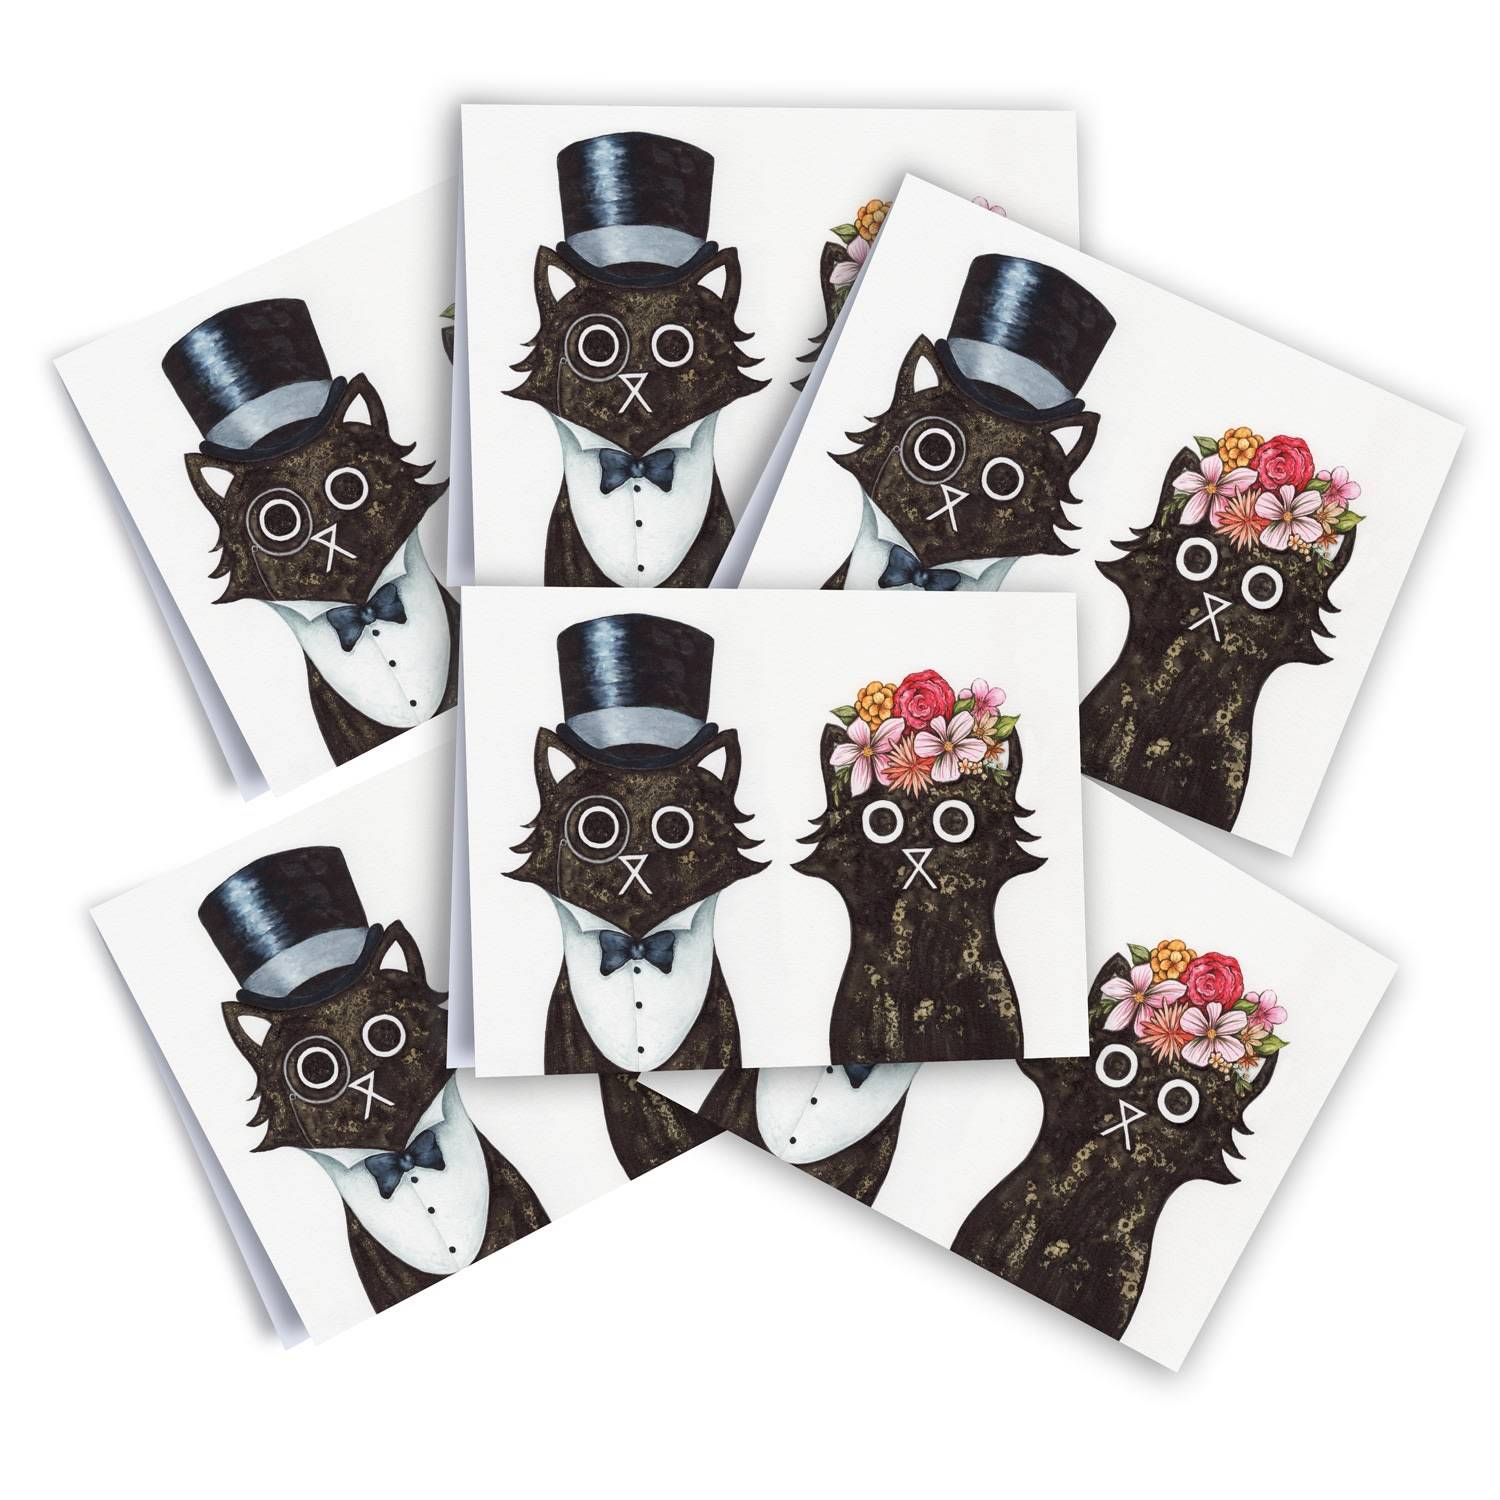 Baldy And The Fidget Artisanal Lord & Lady Cards Pack of 6 Baldy And The Fidget